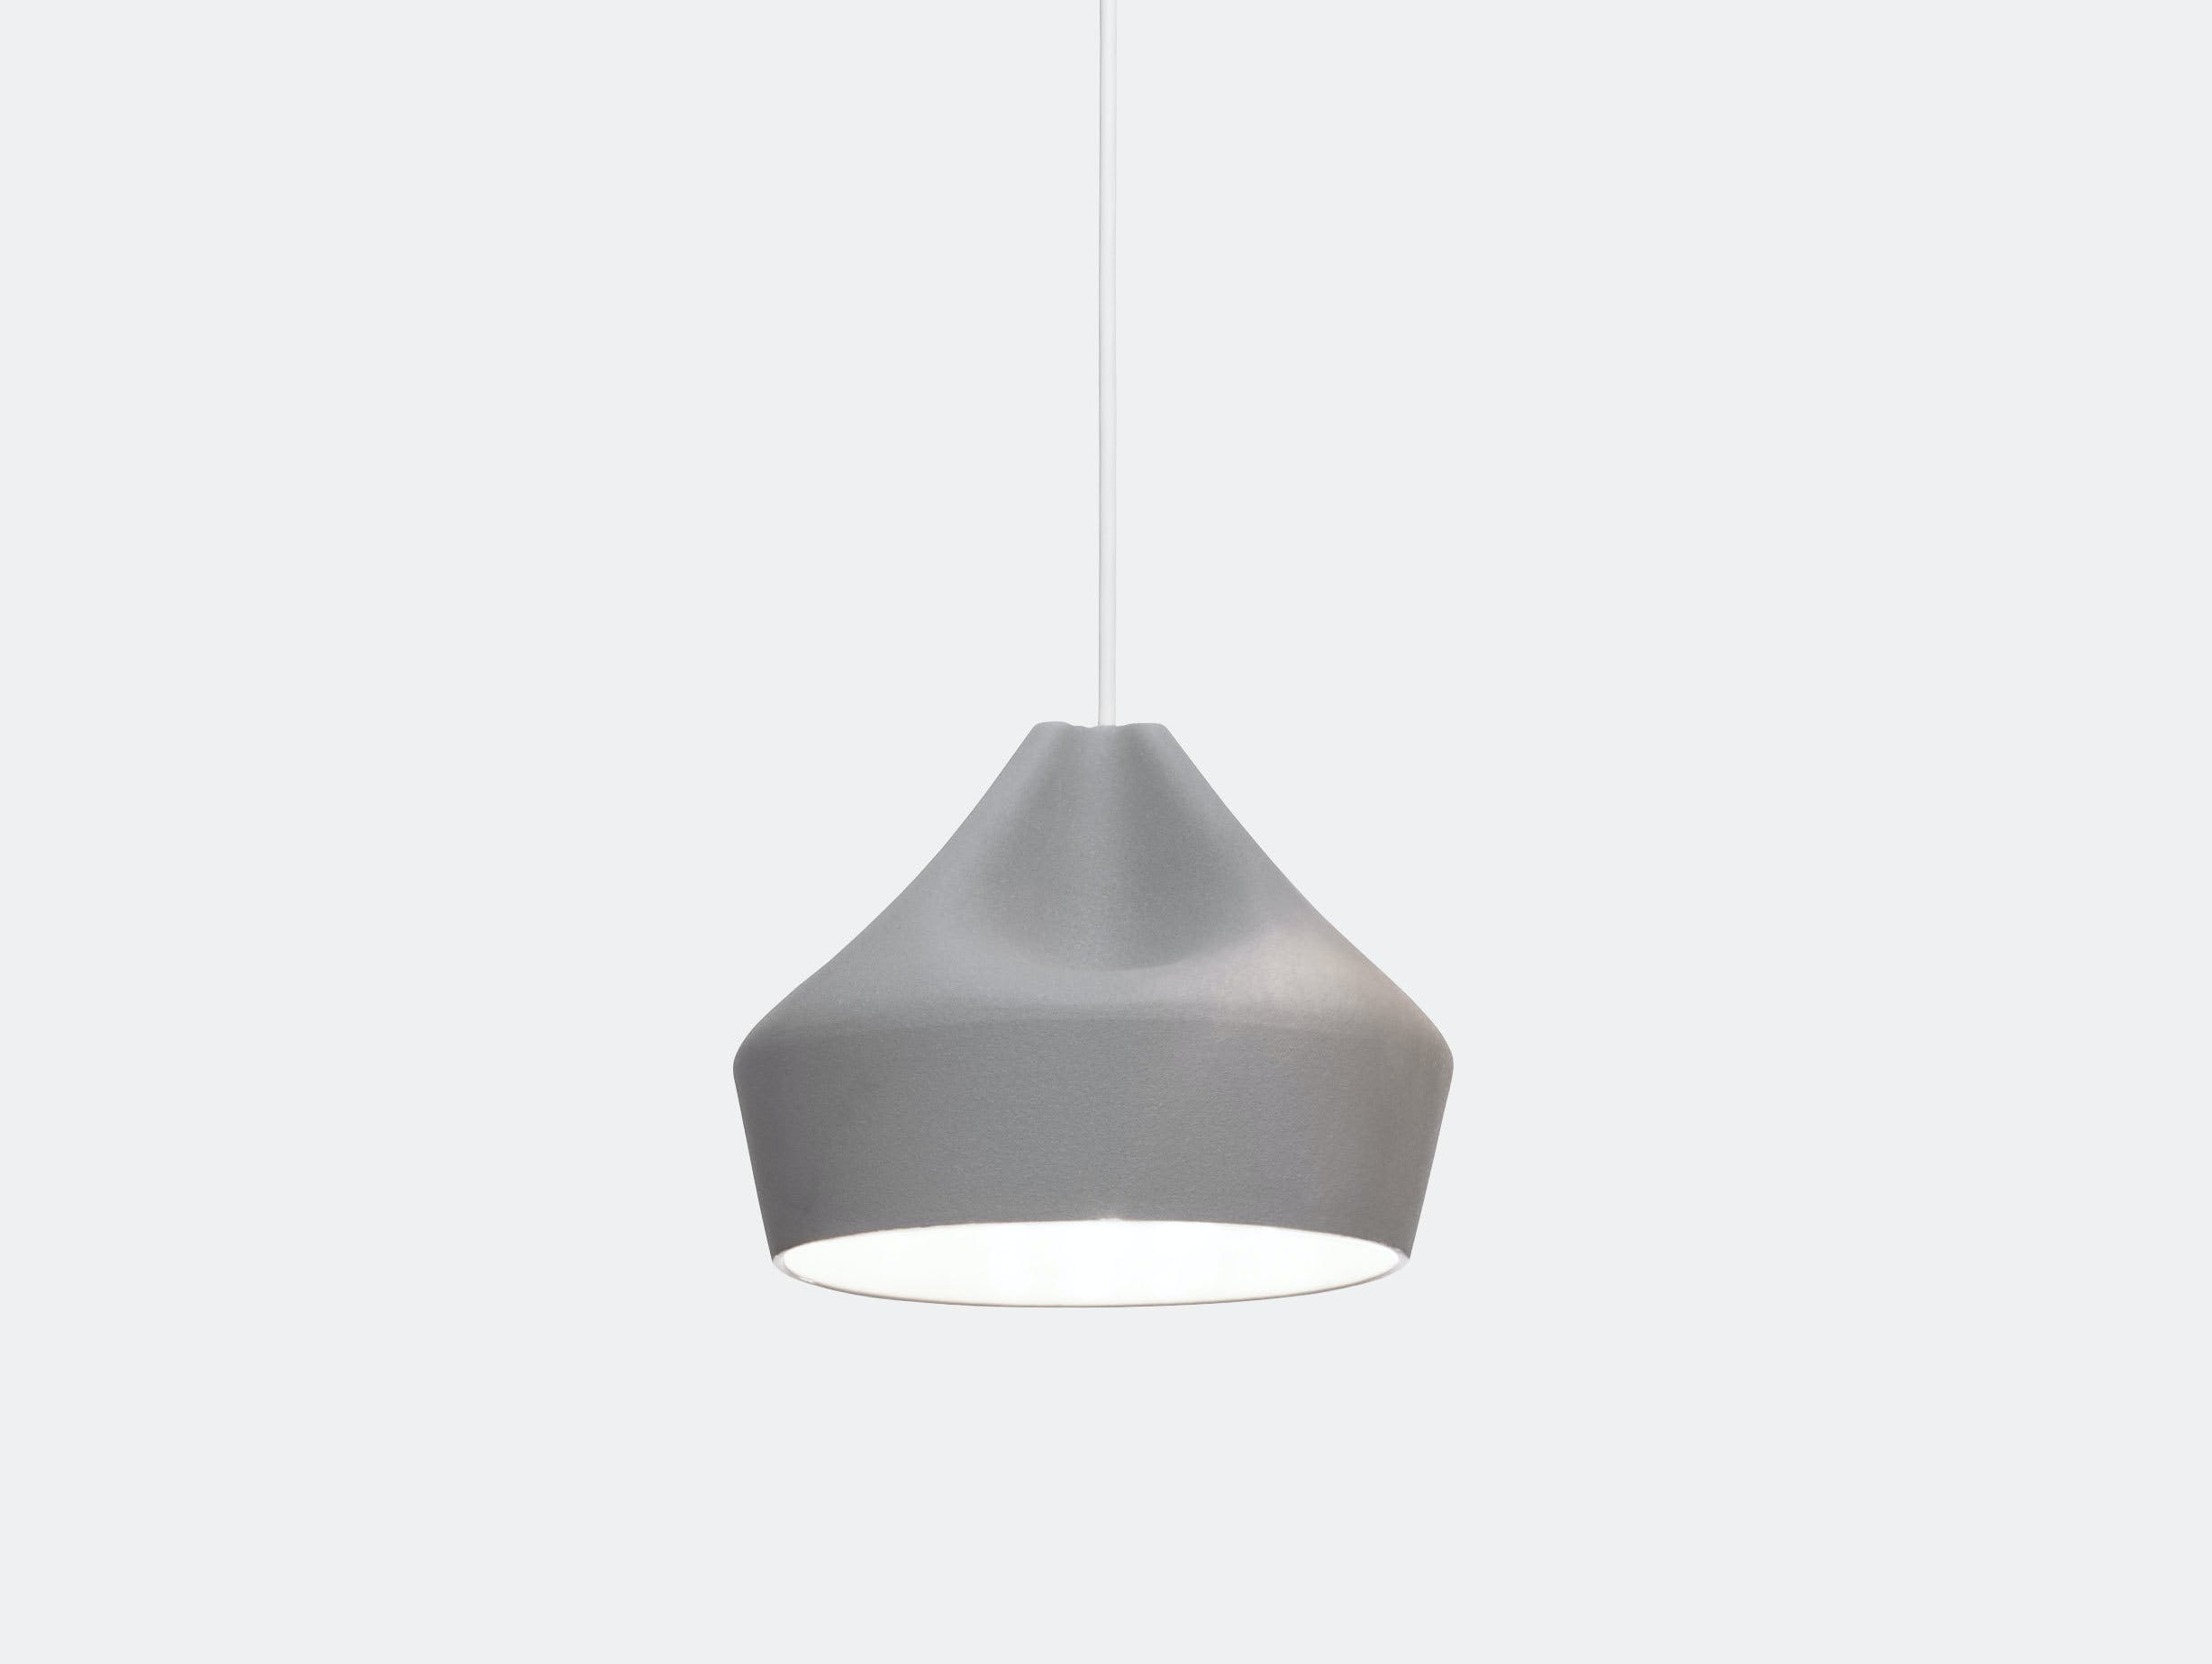 Marset Pleat Box 24 Led Pendant Light Grey White Xavier Manosa Mashallah